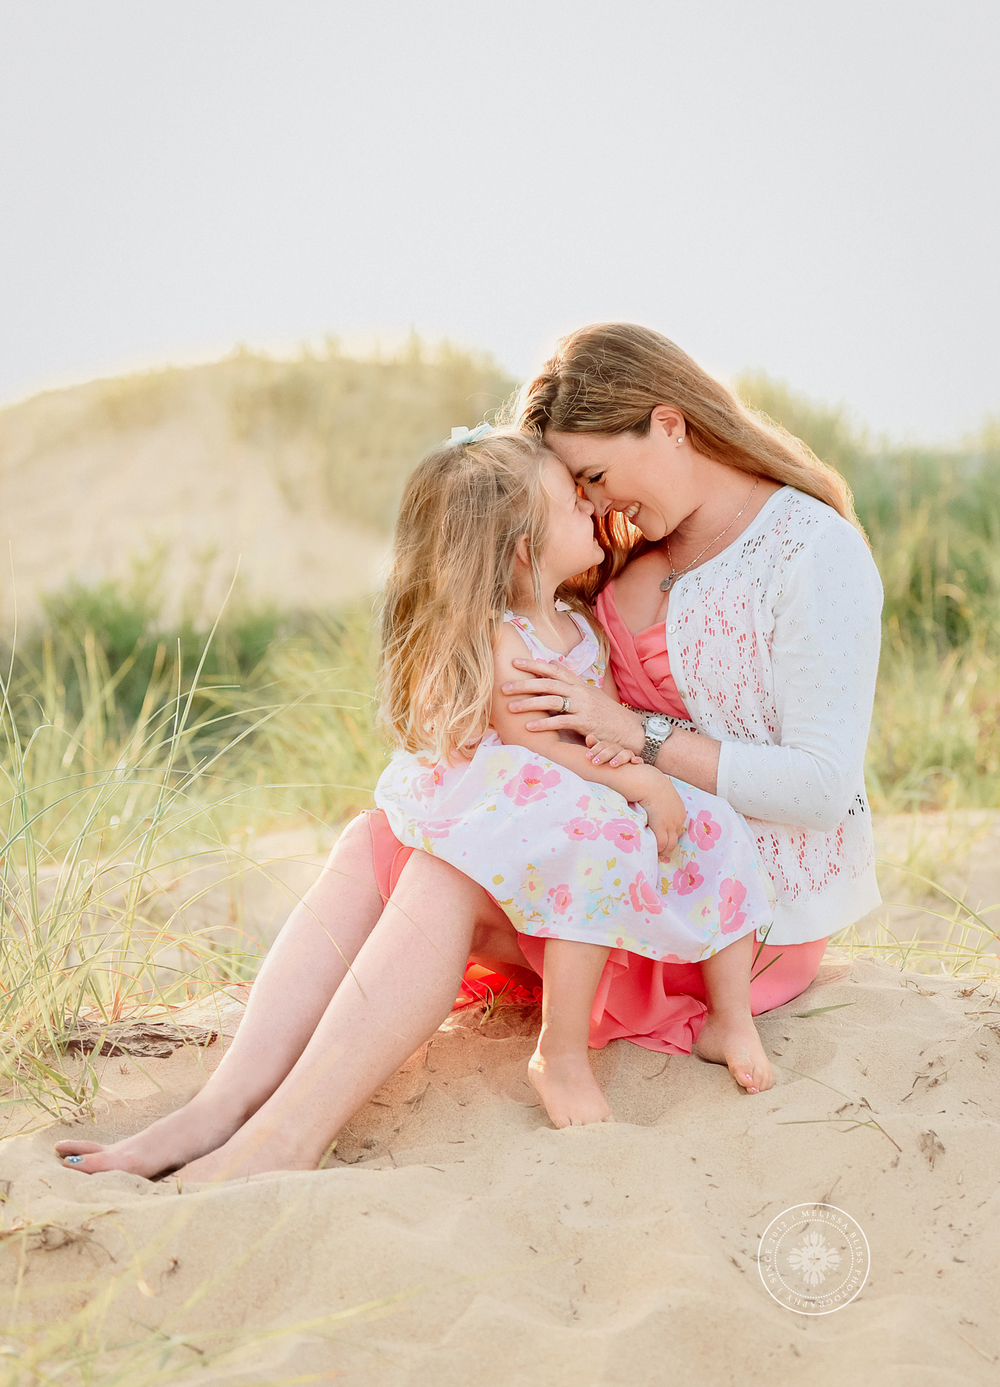 melissa-bliss-photography-mother-daughter-beach-photo-session-virginia-beach-va.jpg